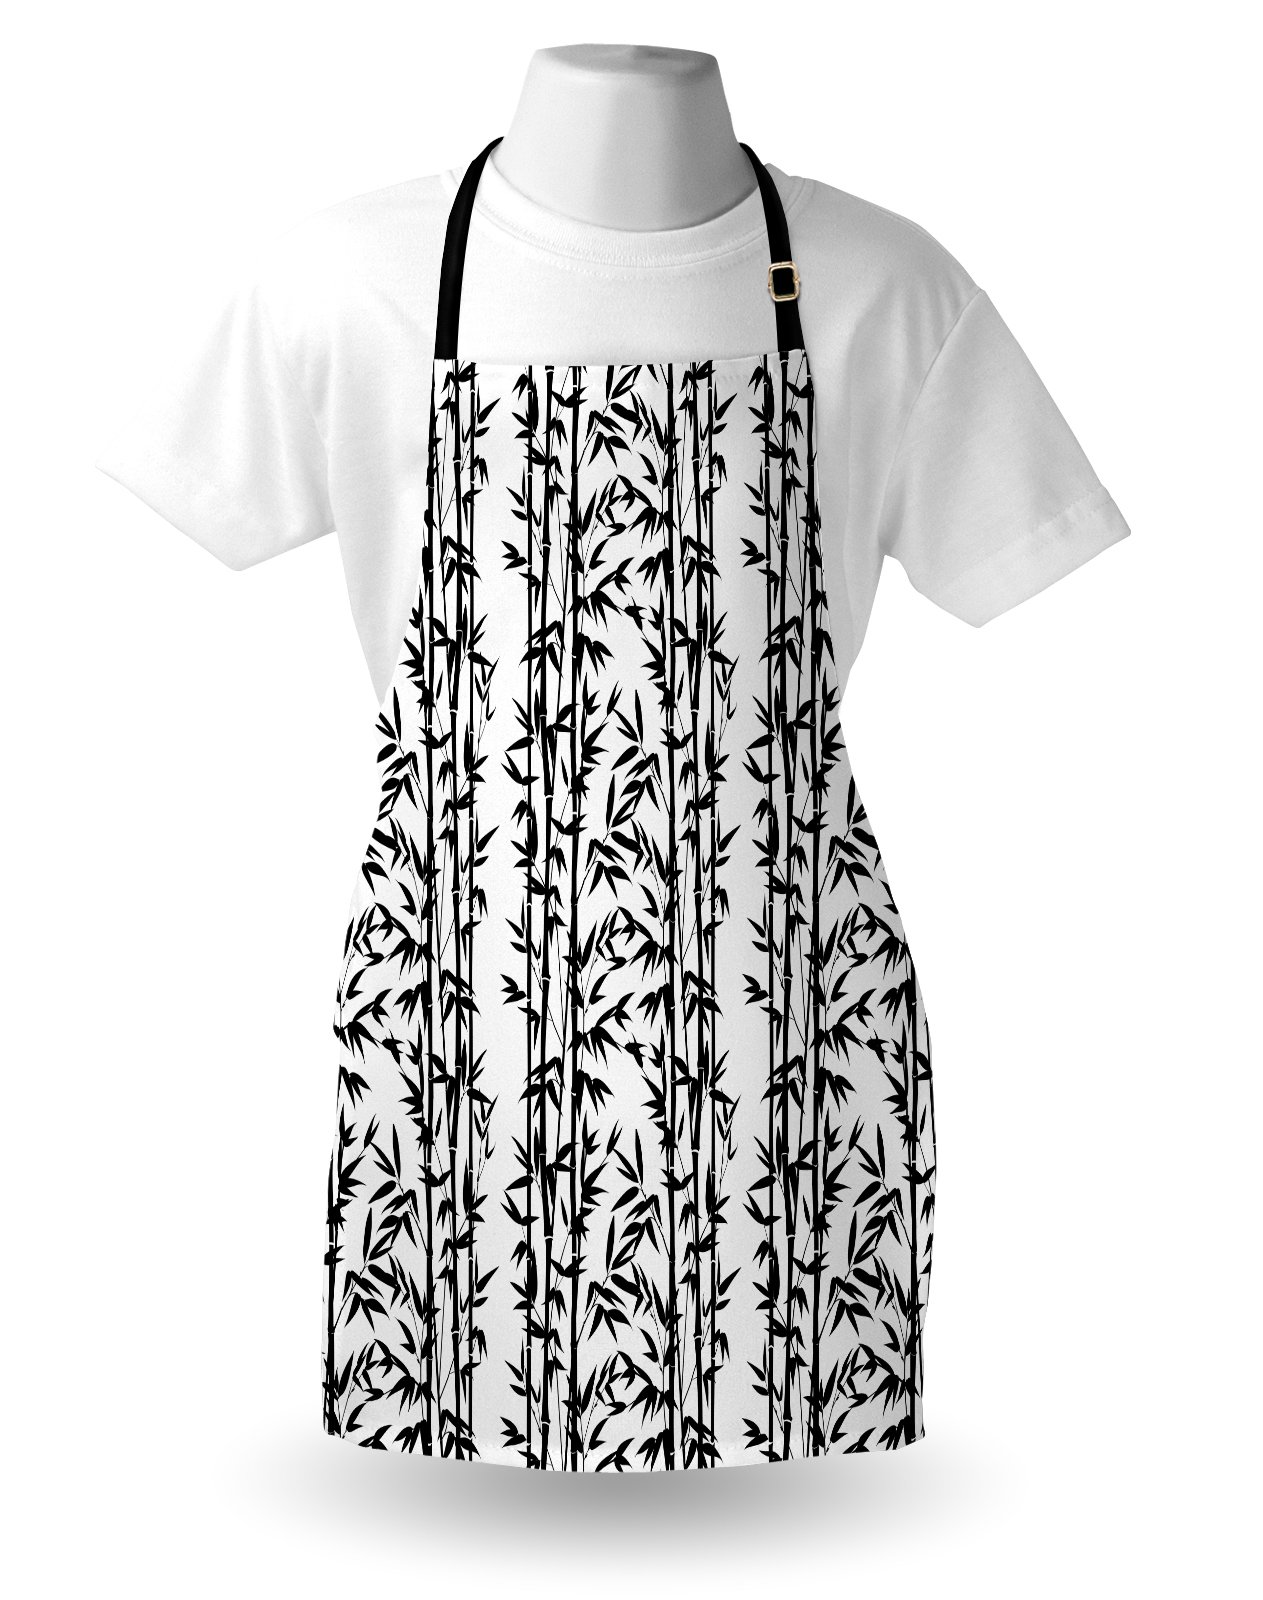 Lunarable Bamboo Apron, Monochrome Natural Inspirations with Bamboo Tree Growth Exotic Garden Zen Spa Art, Unisex Kitchen Bib Apron with Adjustable Neck for Cooking Baking Gardening, Black White by Lunarable (Image #3)